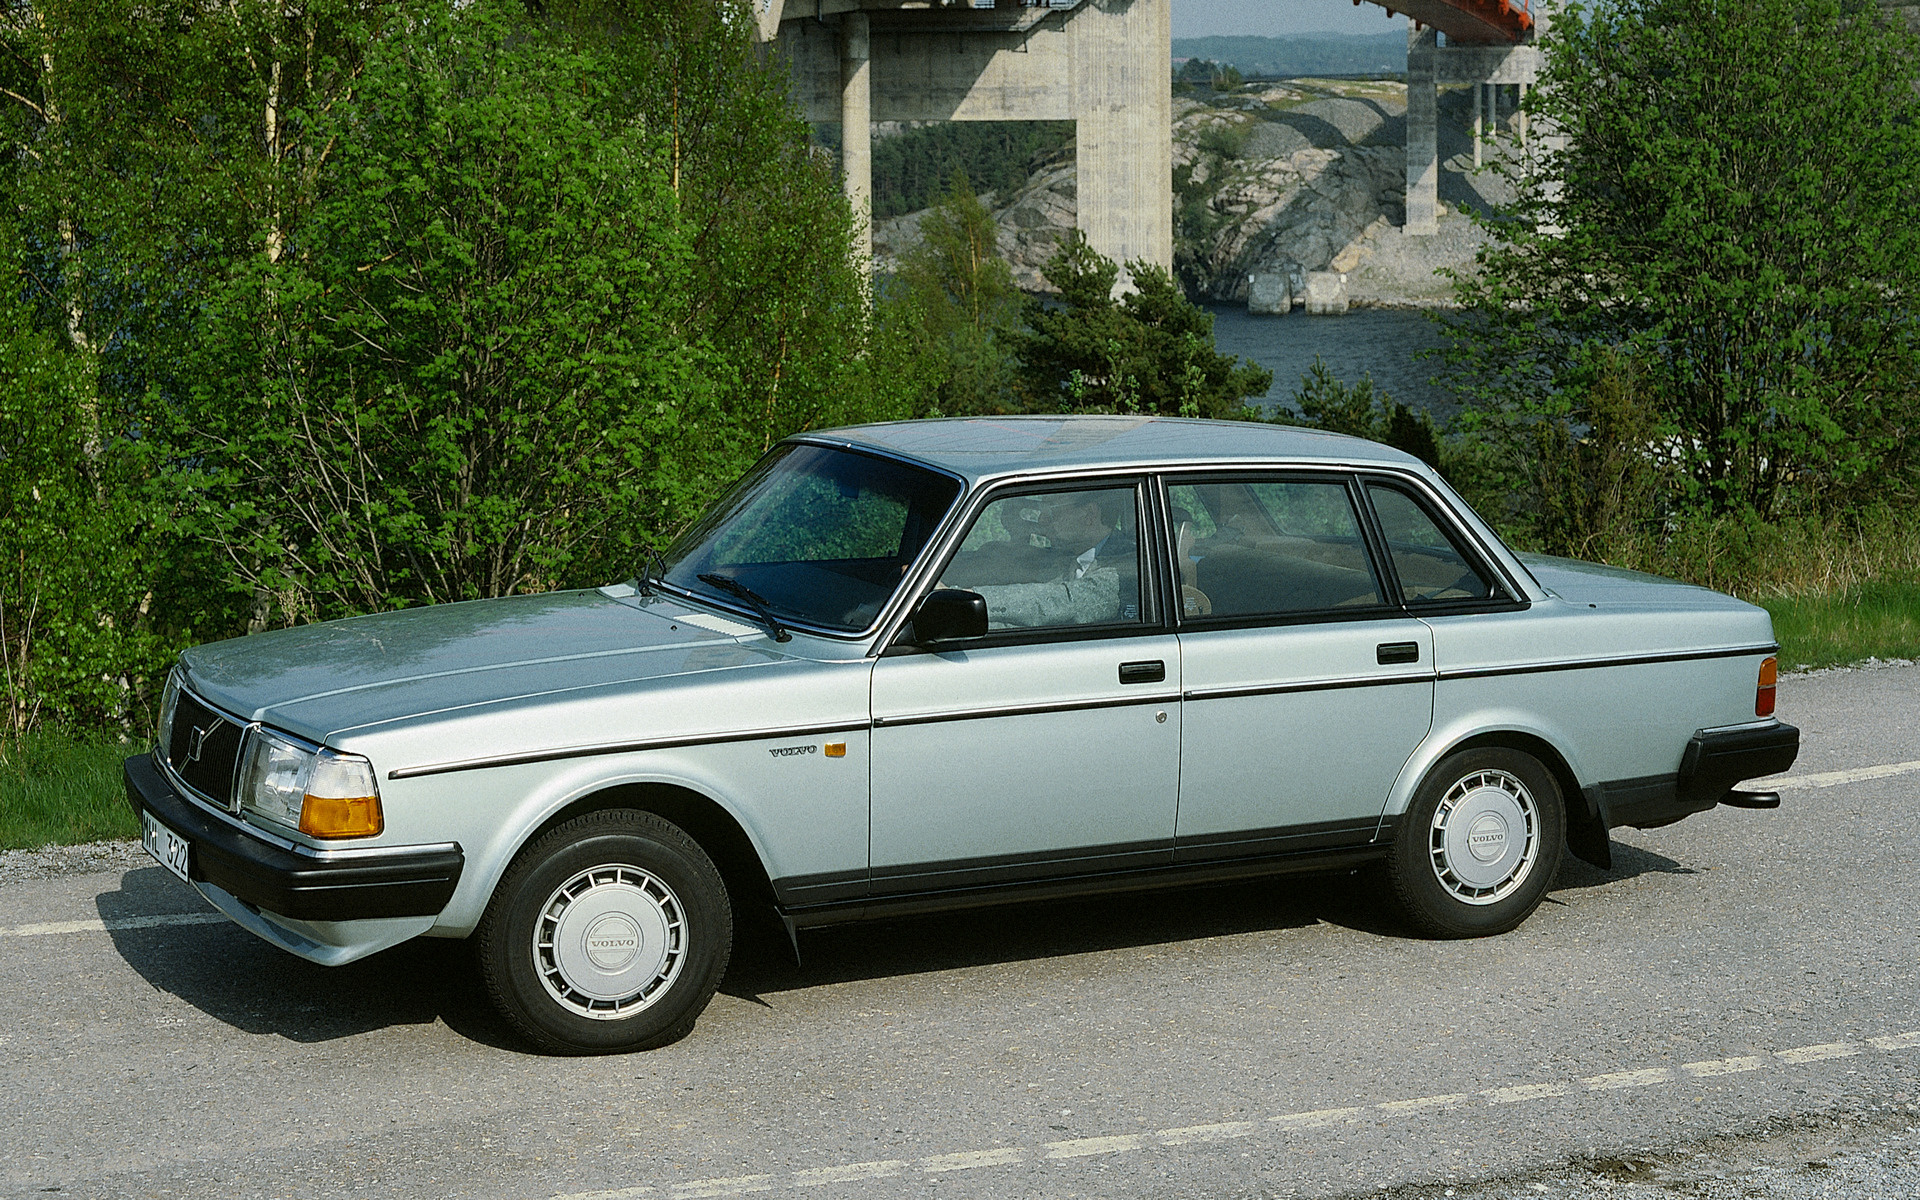 Volvo 240 GL (1986) Wallpapers and HD Images - Car Pixel